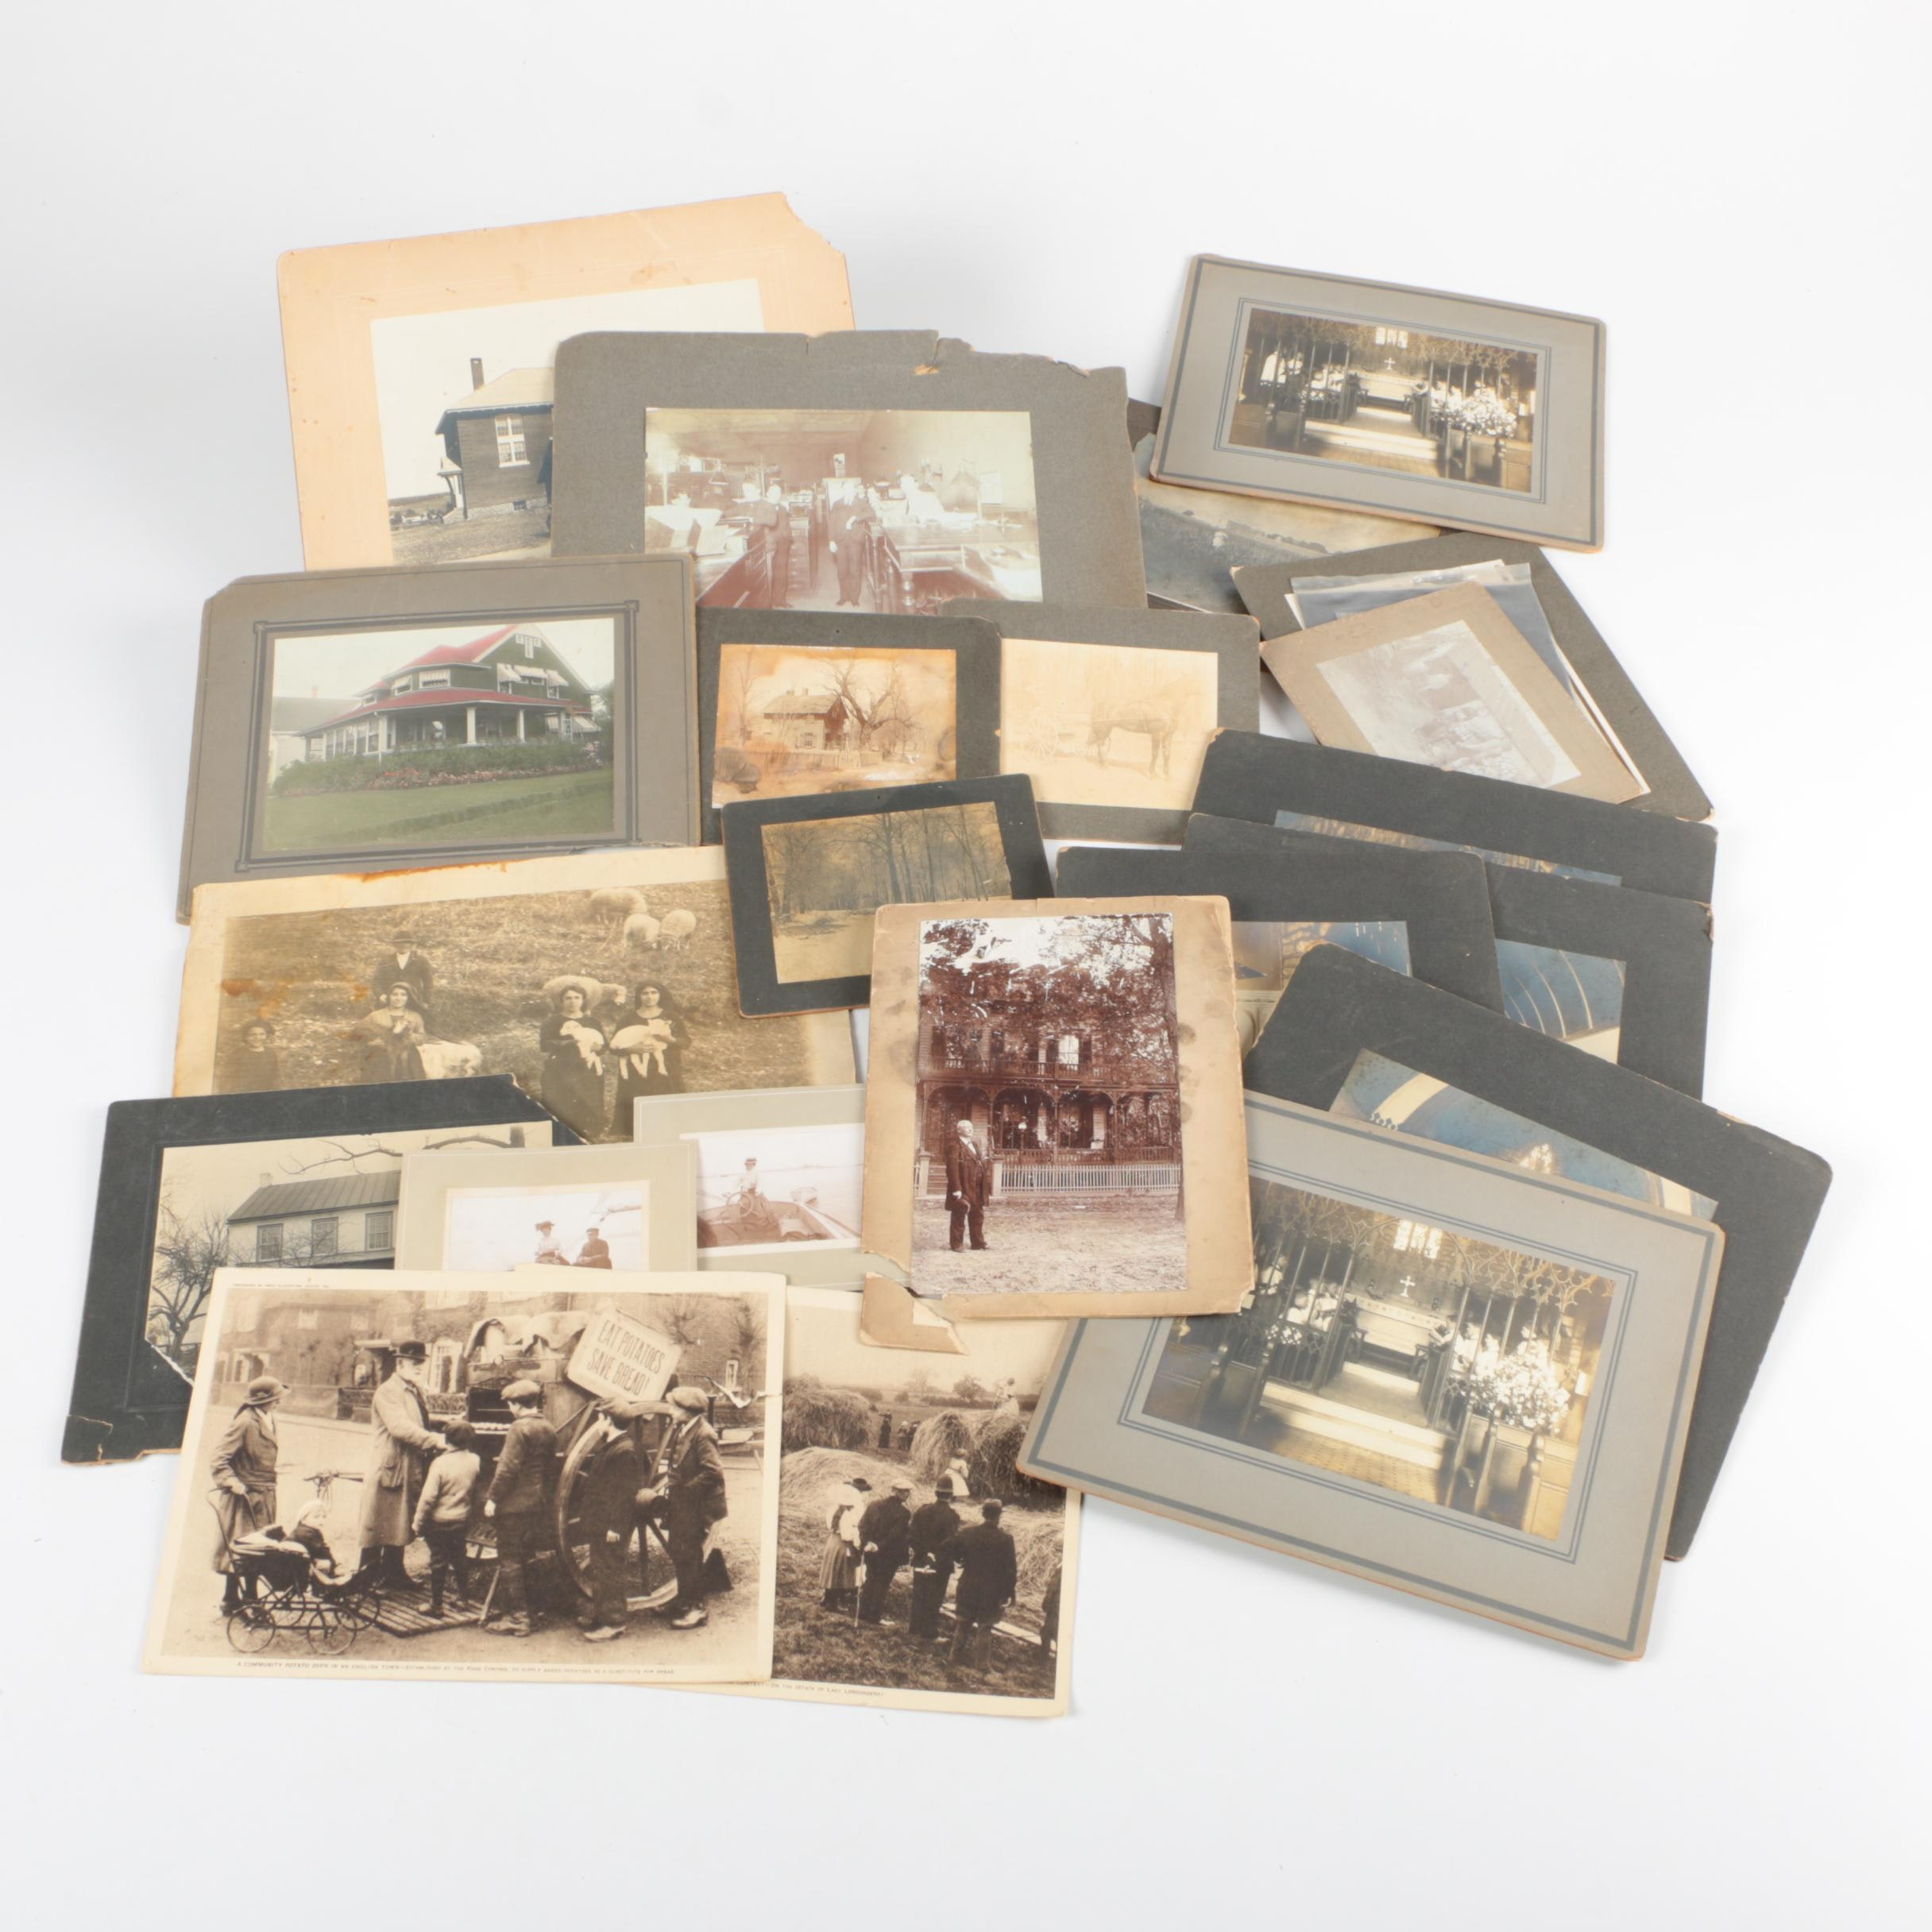 Vintage Photographs of Houses and Groups of People